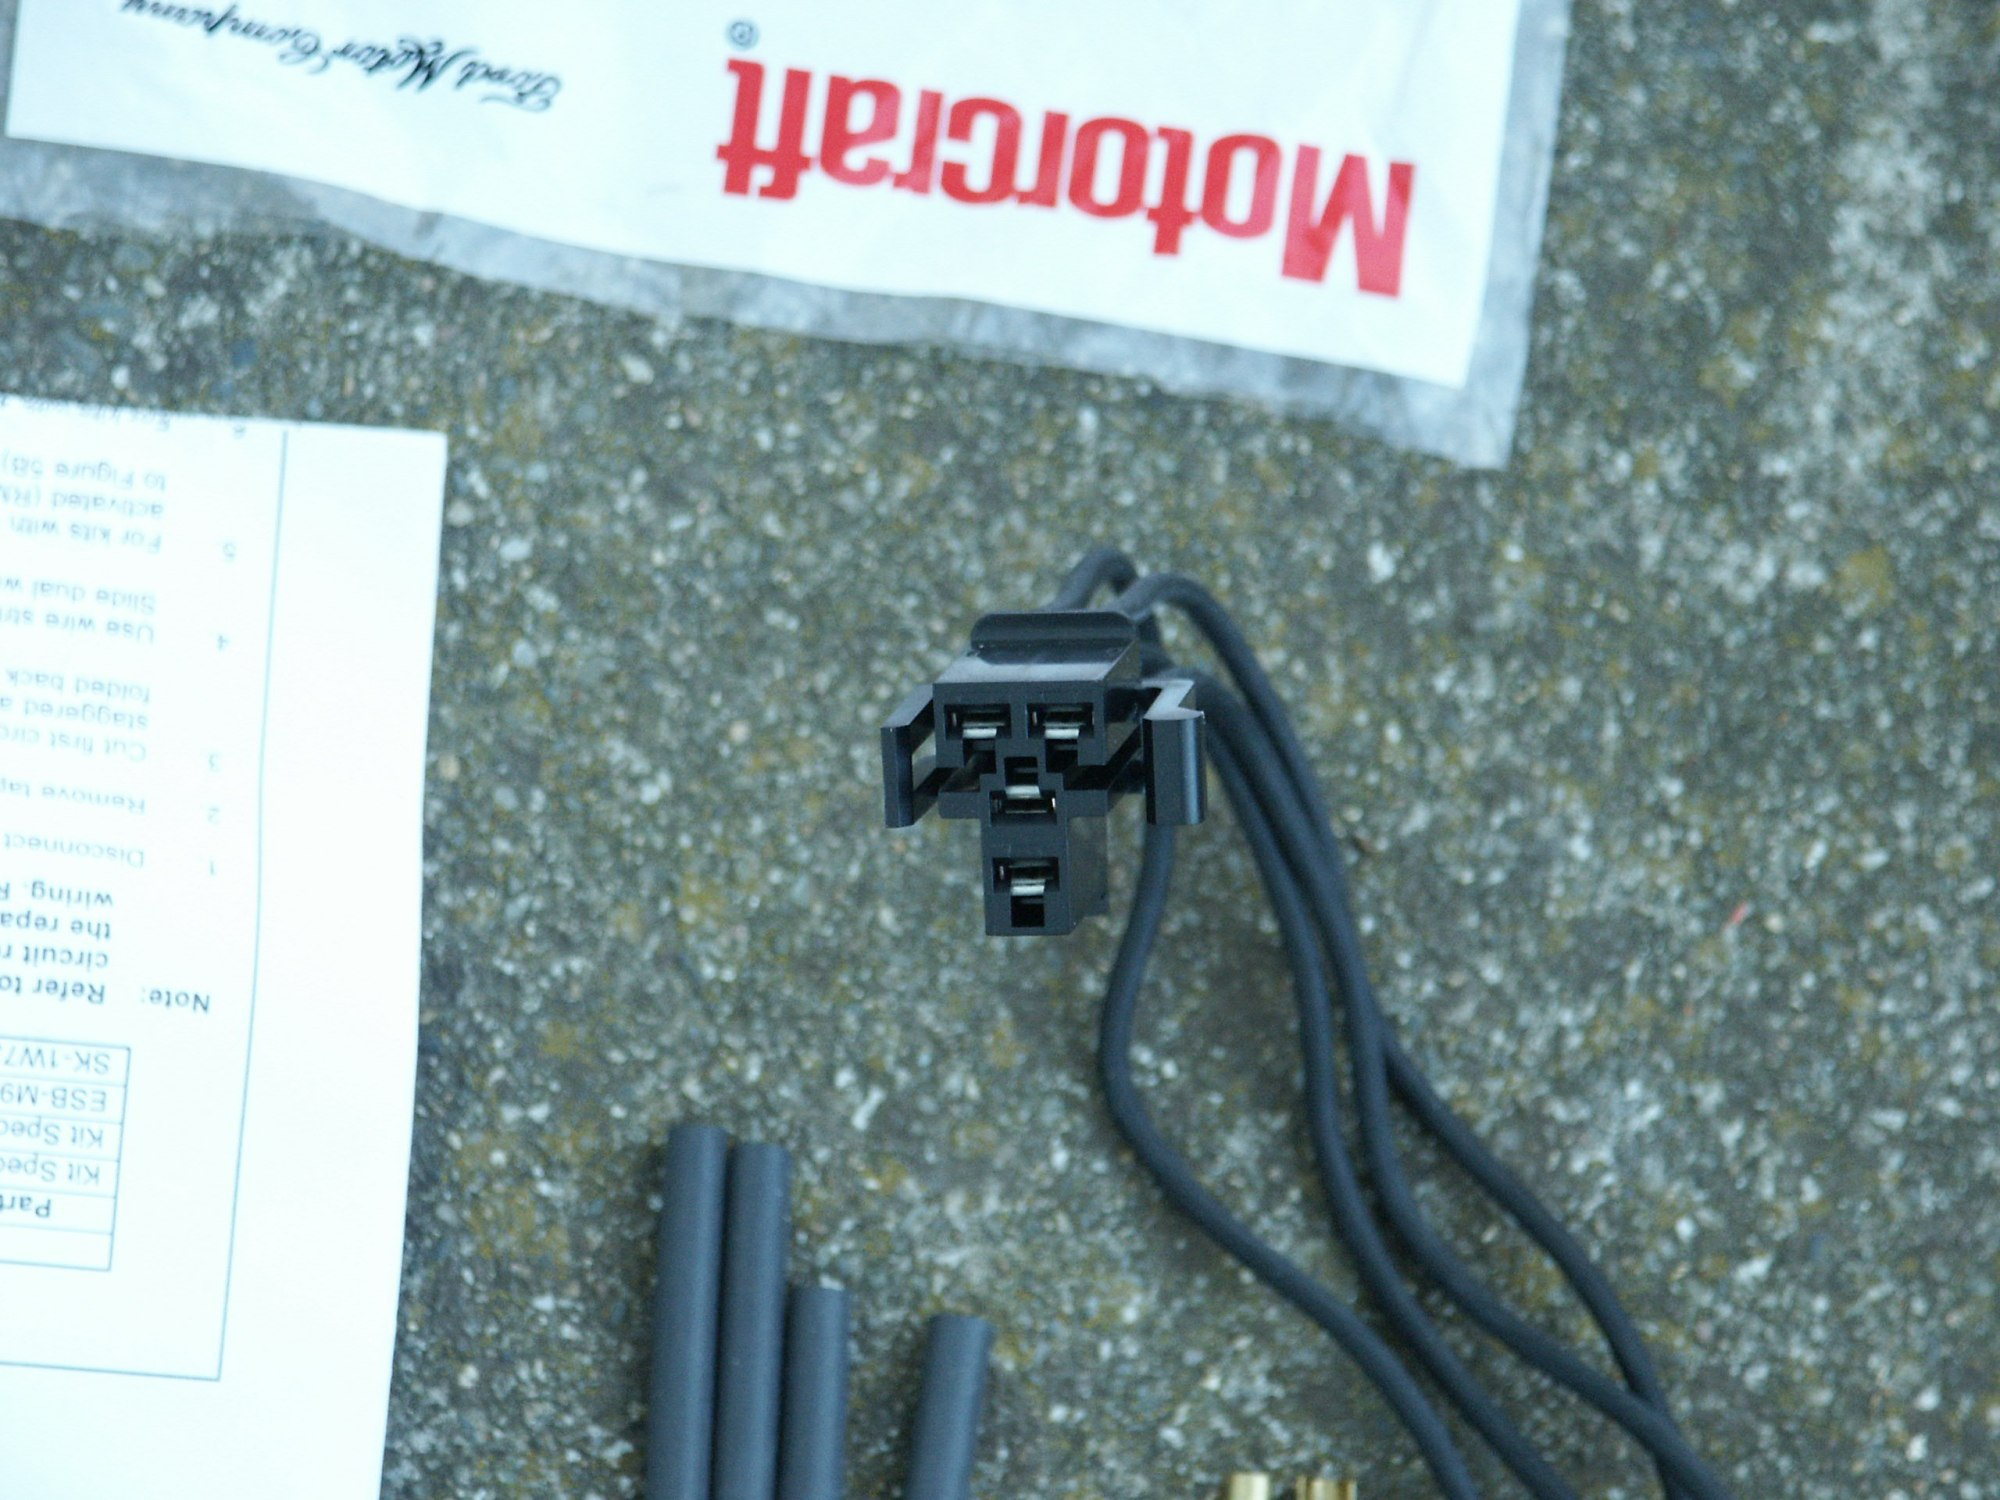 hight resolution of the blower resistor wiring pigtail is also avaliable aftermarket from napa with color coded wires but the napa blower resistor pigtail does not include the